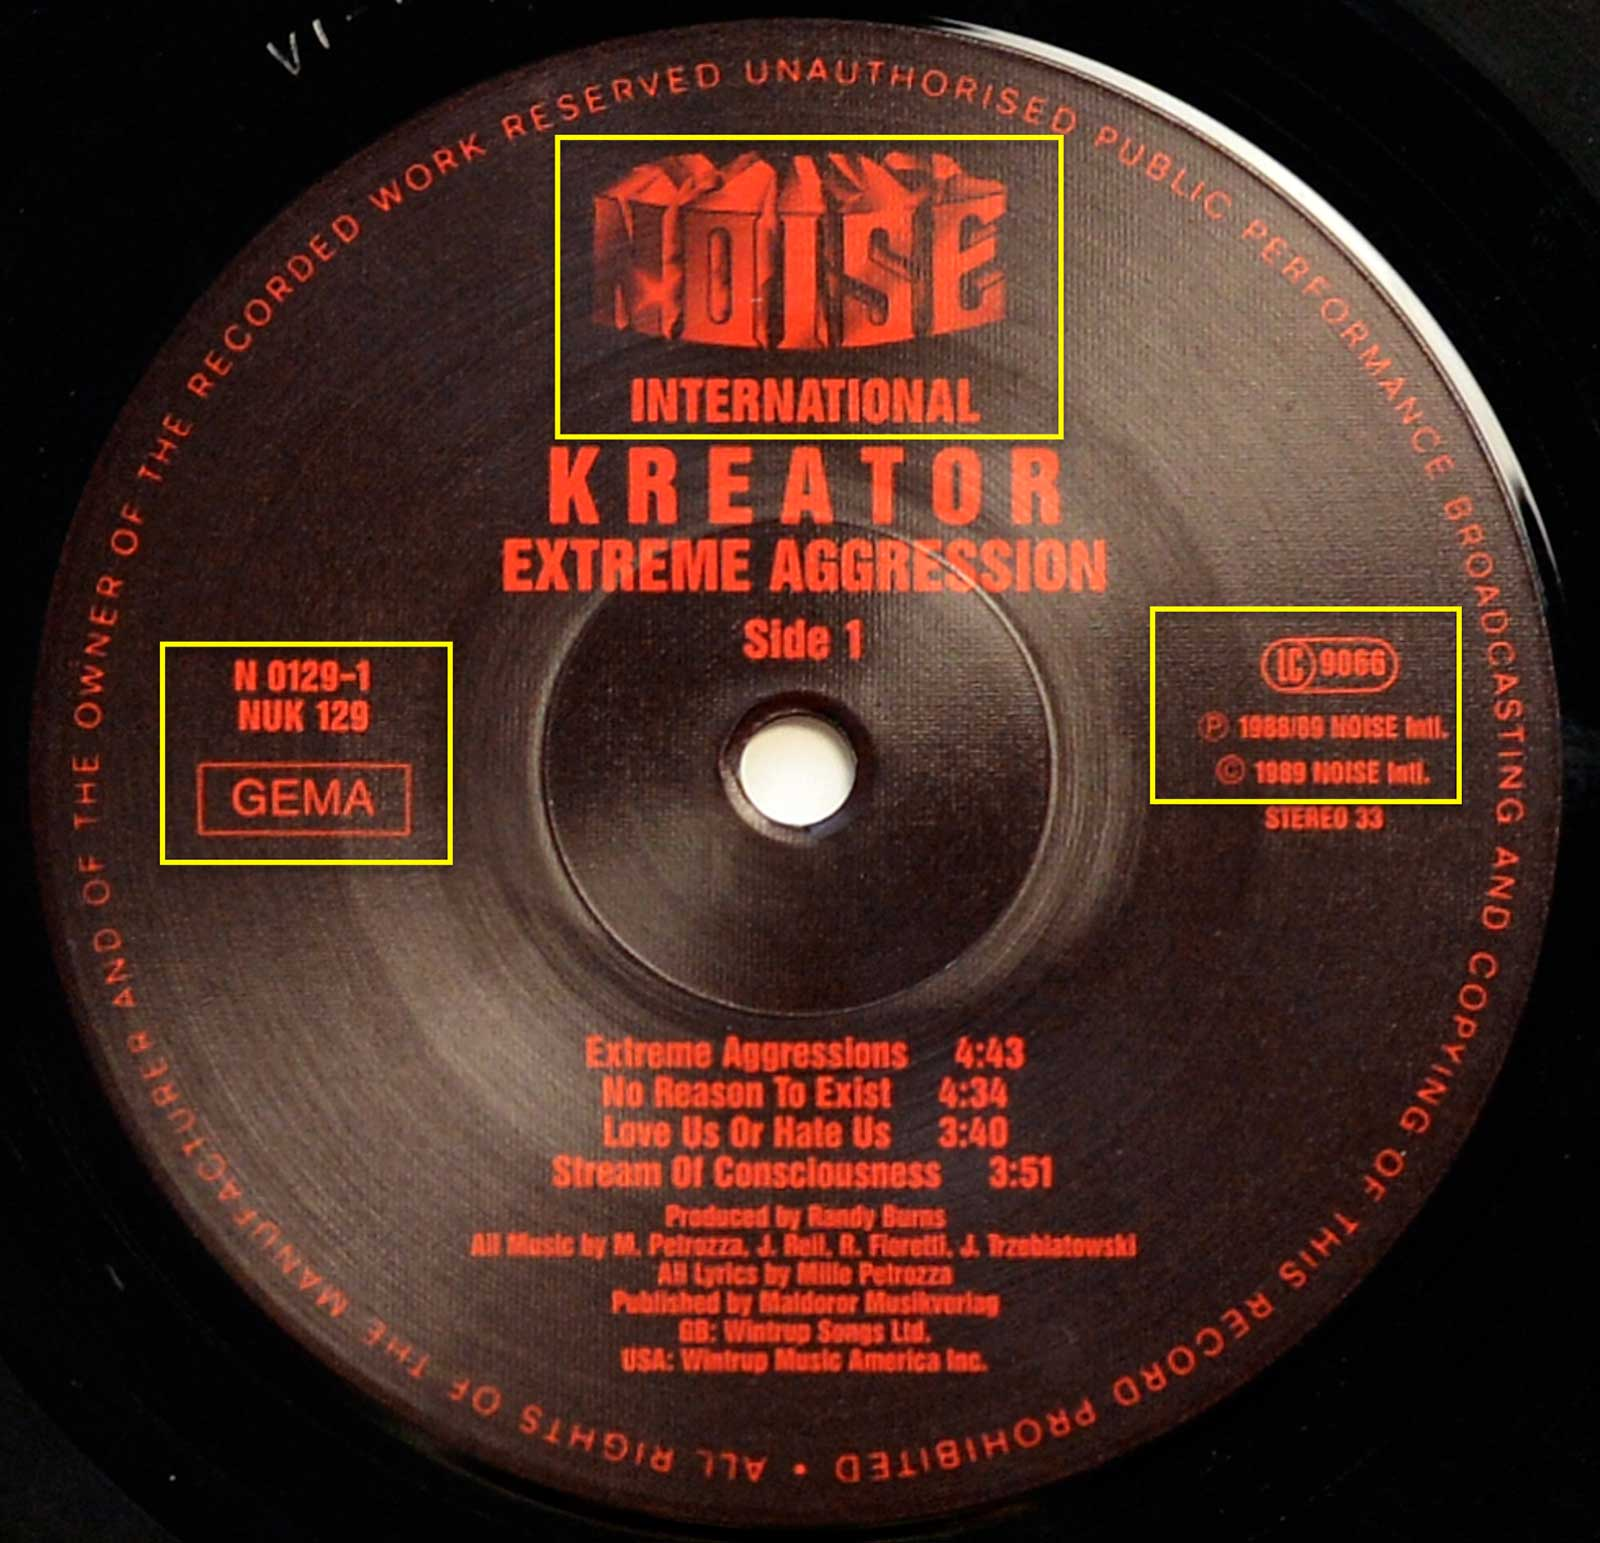 Photo of record label of KREATOR - Extreme Aggression